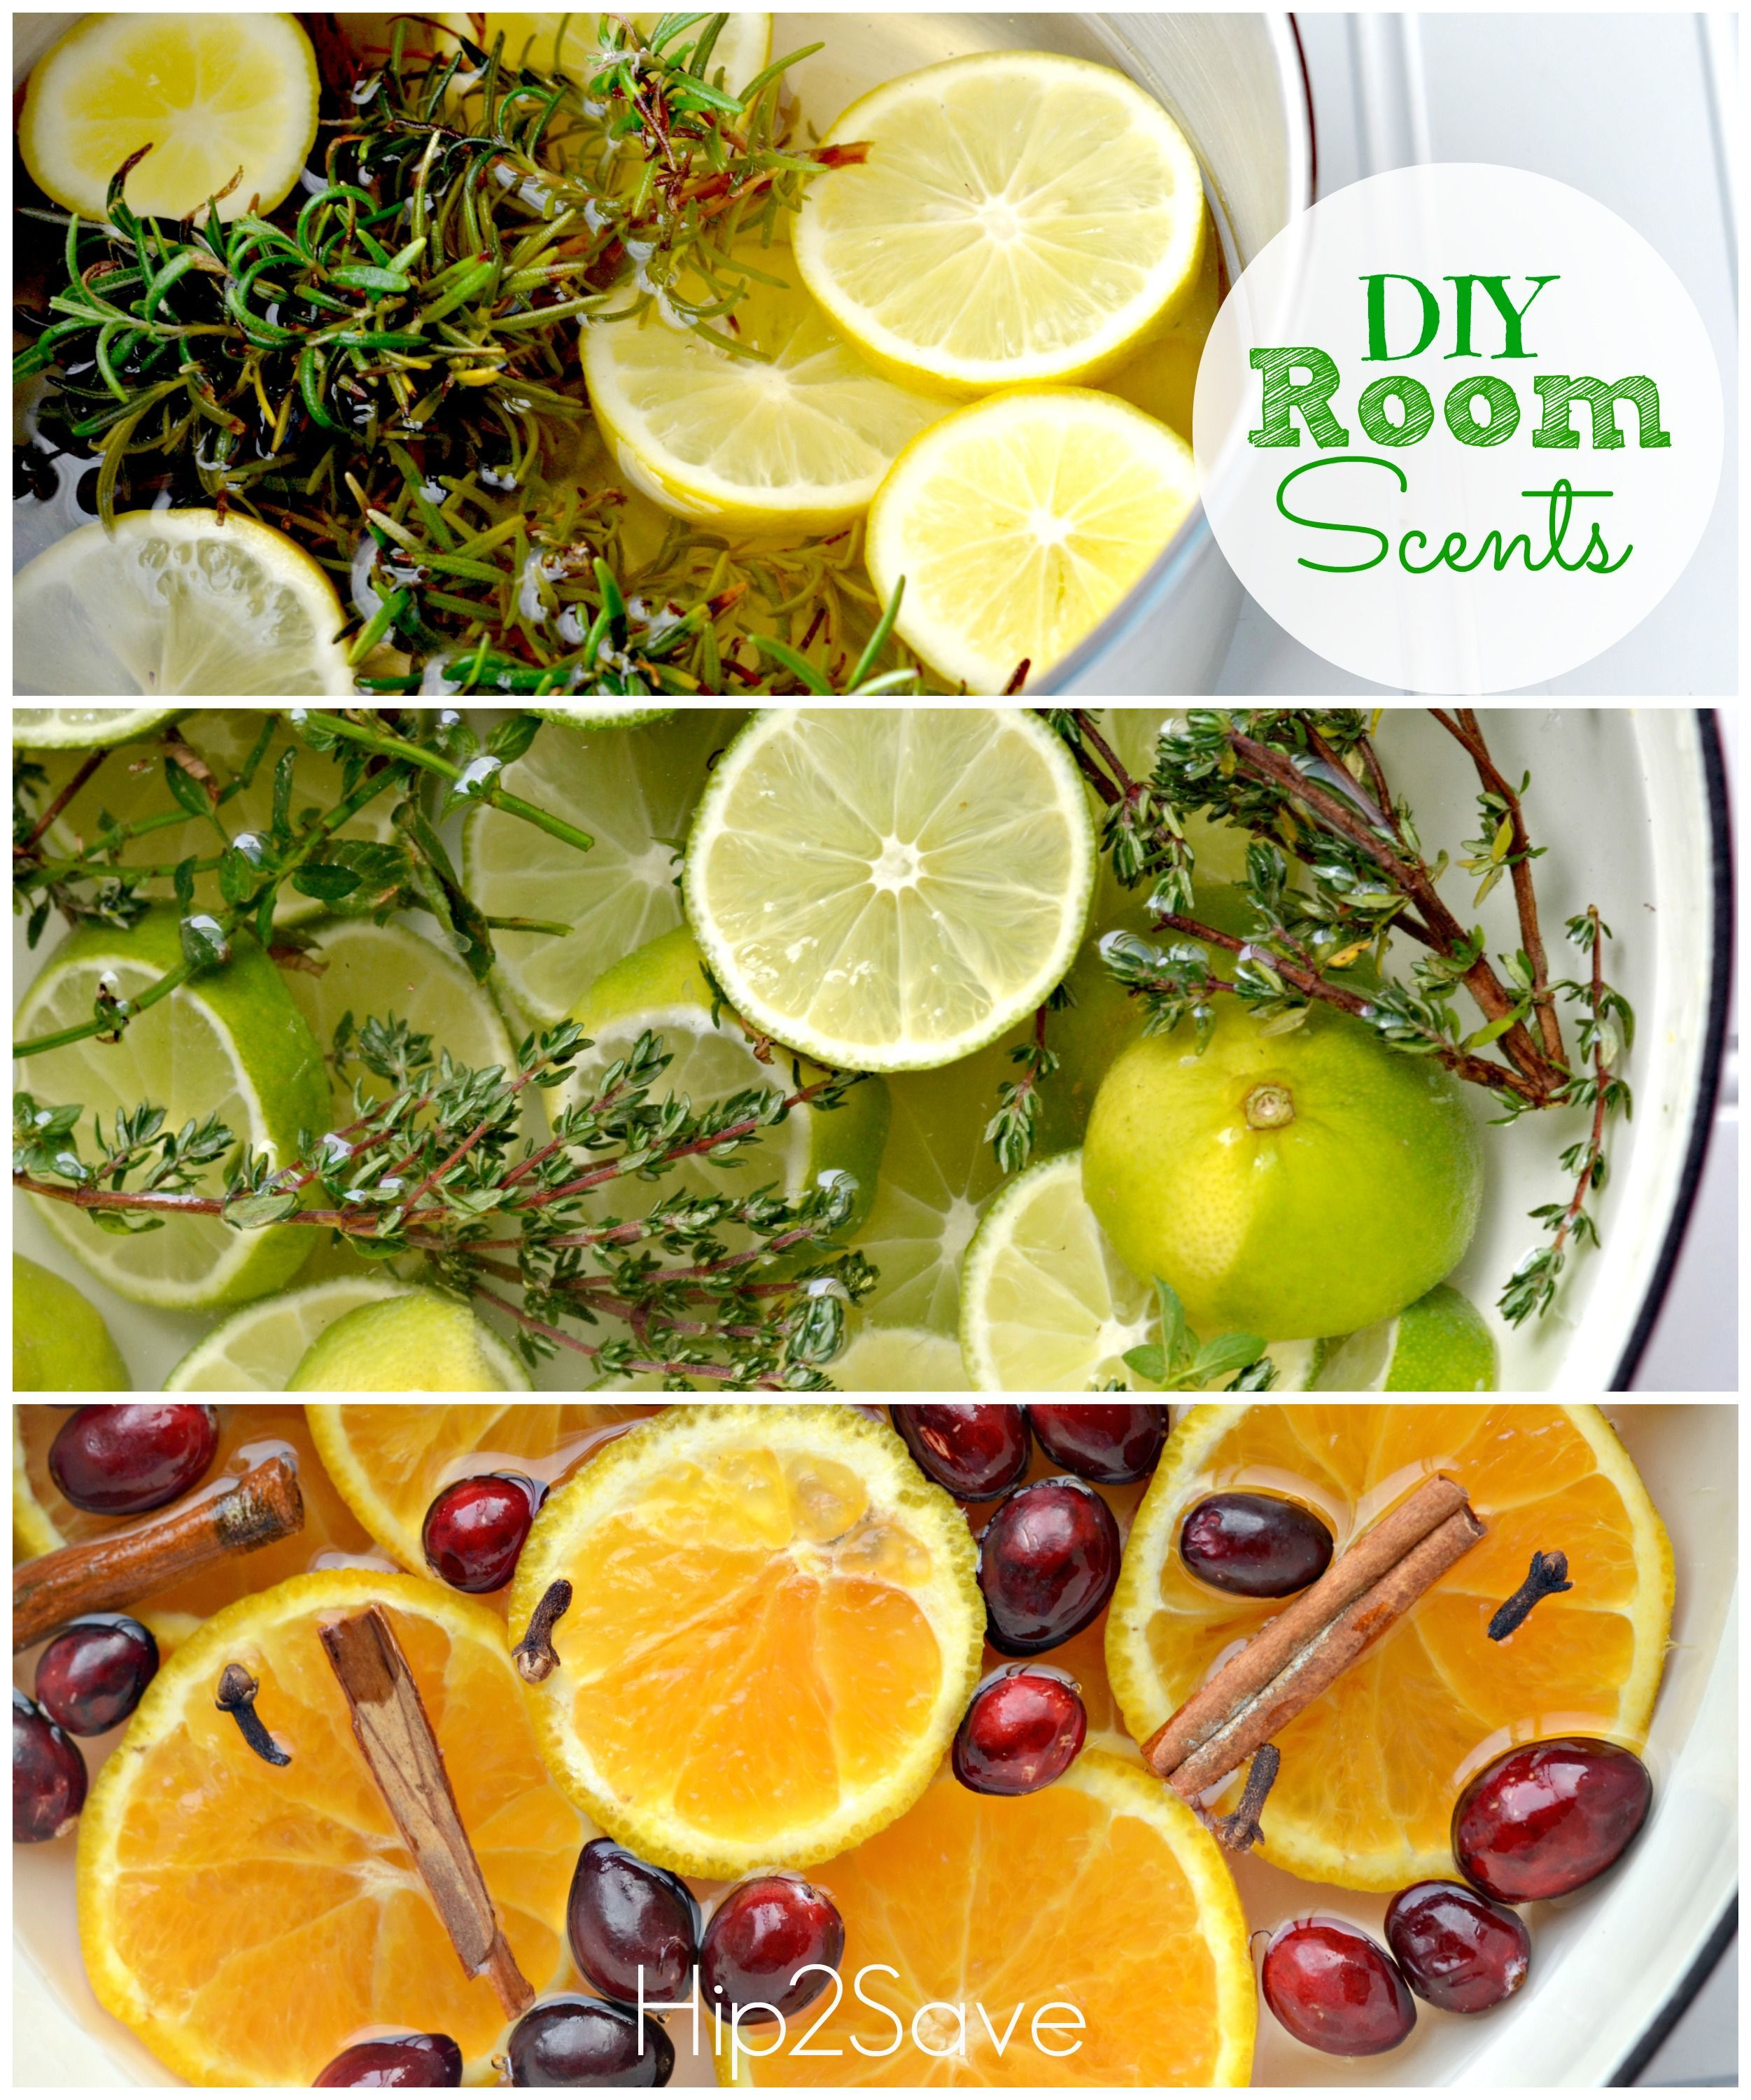 DIY Stovetop Room Scent Recipes DIY Stovetop Room Scent Recipes by Hip2Save (It's Not Your Grandma's Coupon Site!) Stovetop Room Scent Recipes DIY Stovetop Room Scent Recipes by Hip2Save (It's Not Your Grandma's Coupon Site!)DIY Stovetop Room Scent Recipes by Hip2Save (It's Not Your Grandma's Coupon Site!)